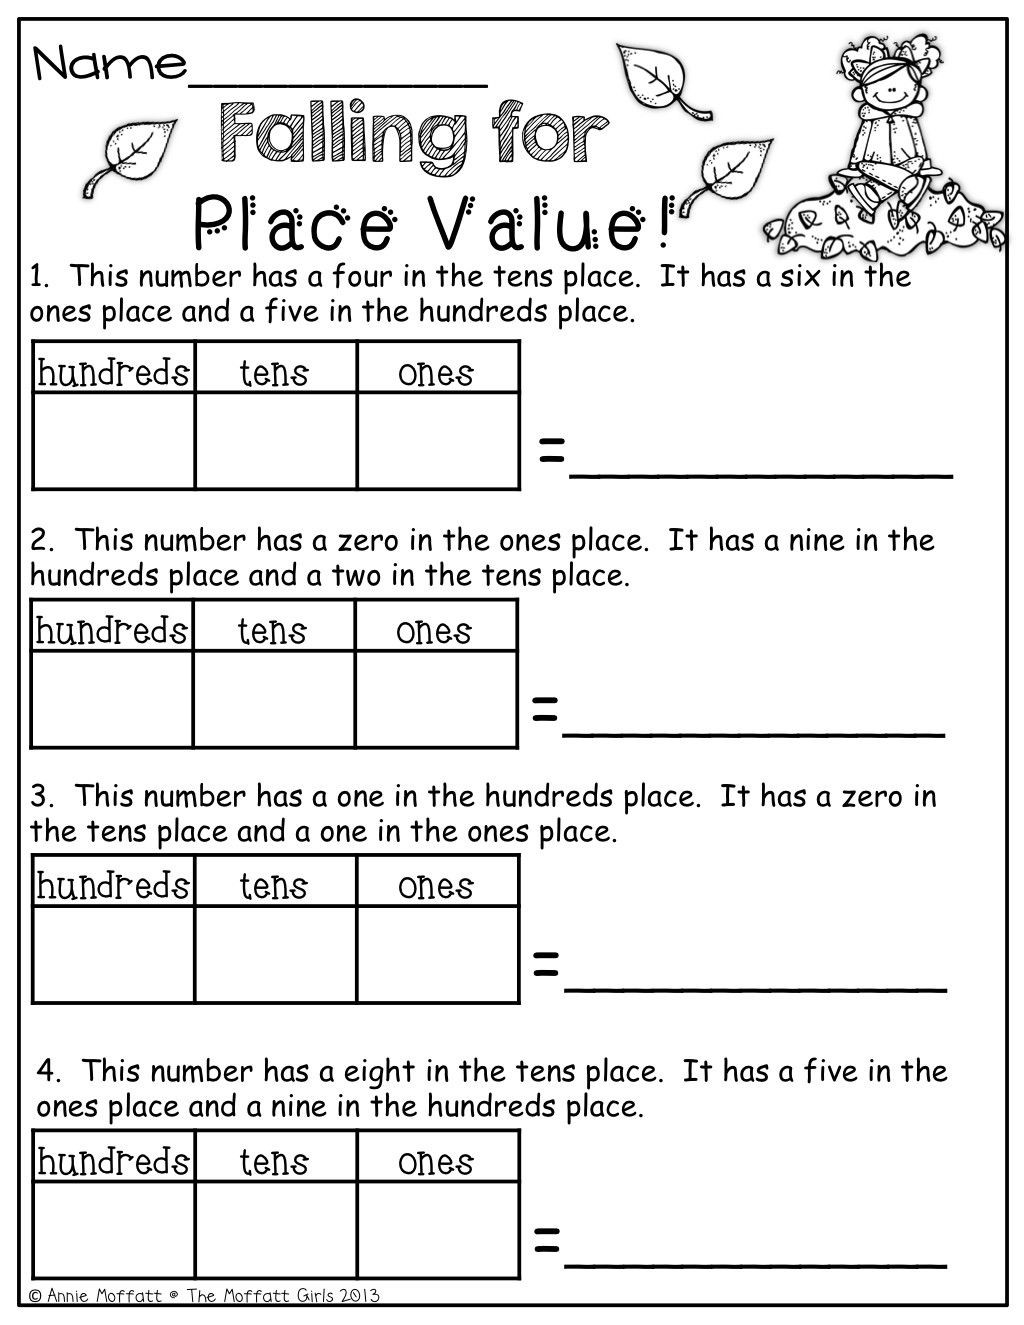 Place Value First Grade Worksheets   Second grade math [ 1325 x 1024 Pixel ]